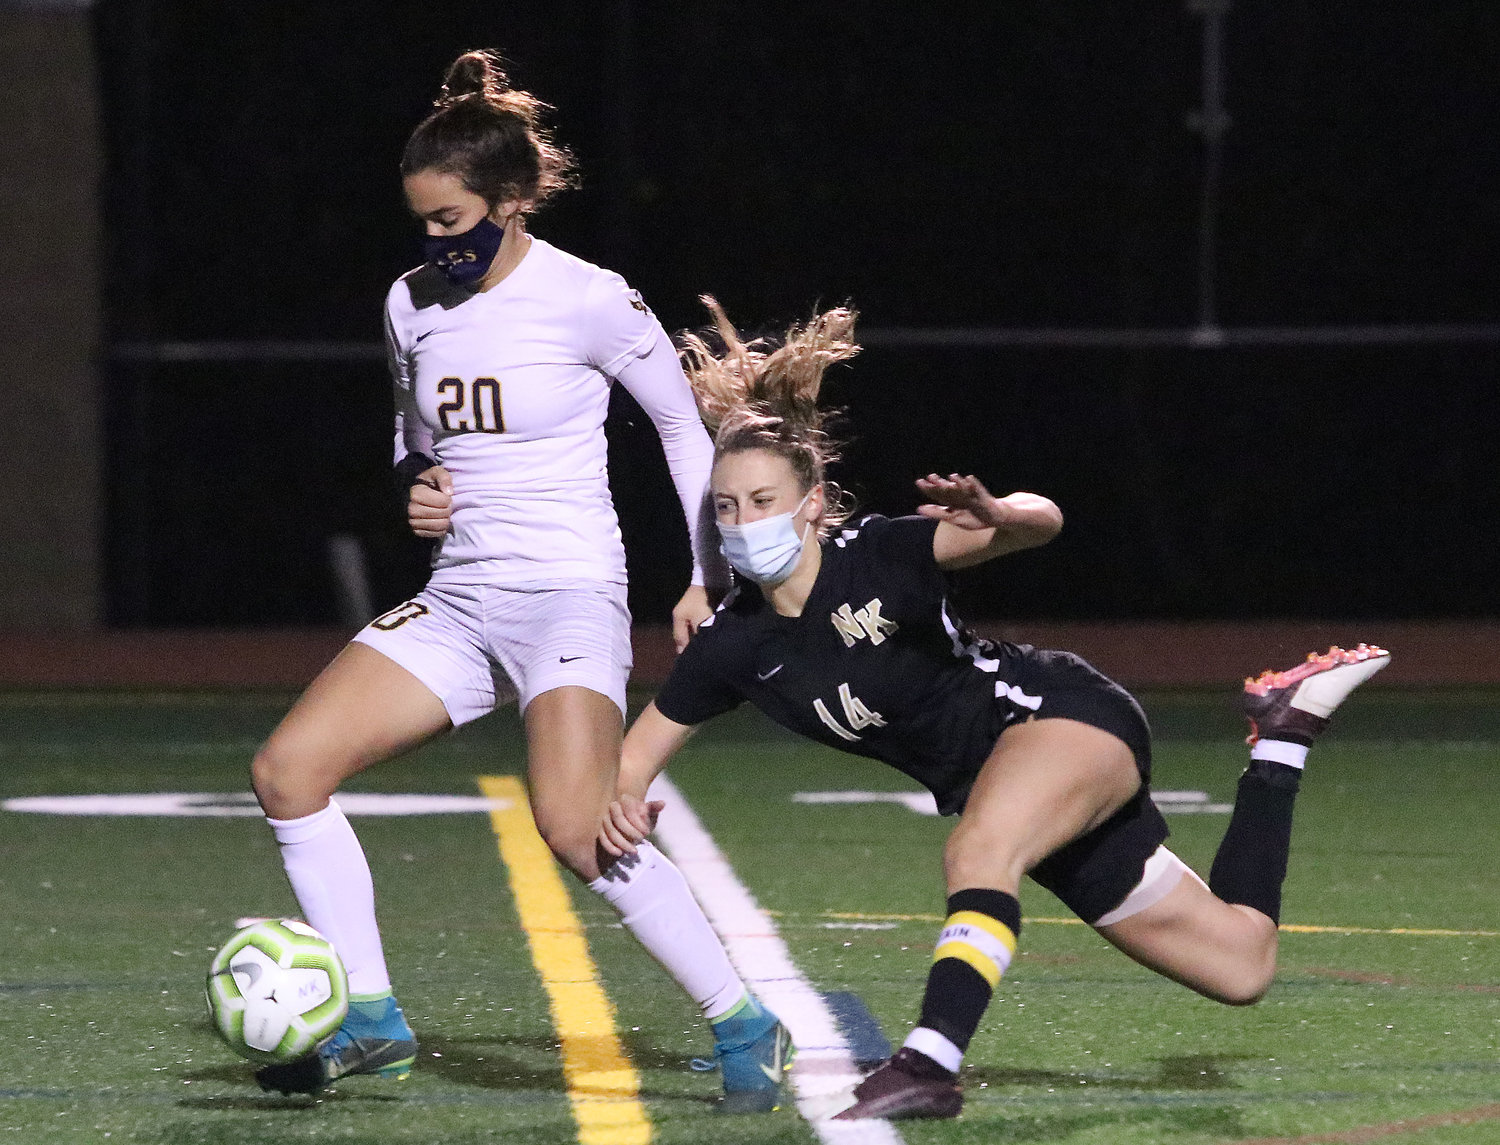 Barrington High School senior forward Tess Gagliano steadies as a North Kingstown defender falls trying to stop her on a through pass up the middle in the first half of the quarterfinal game on Tuesday night at North Kingstown.